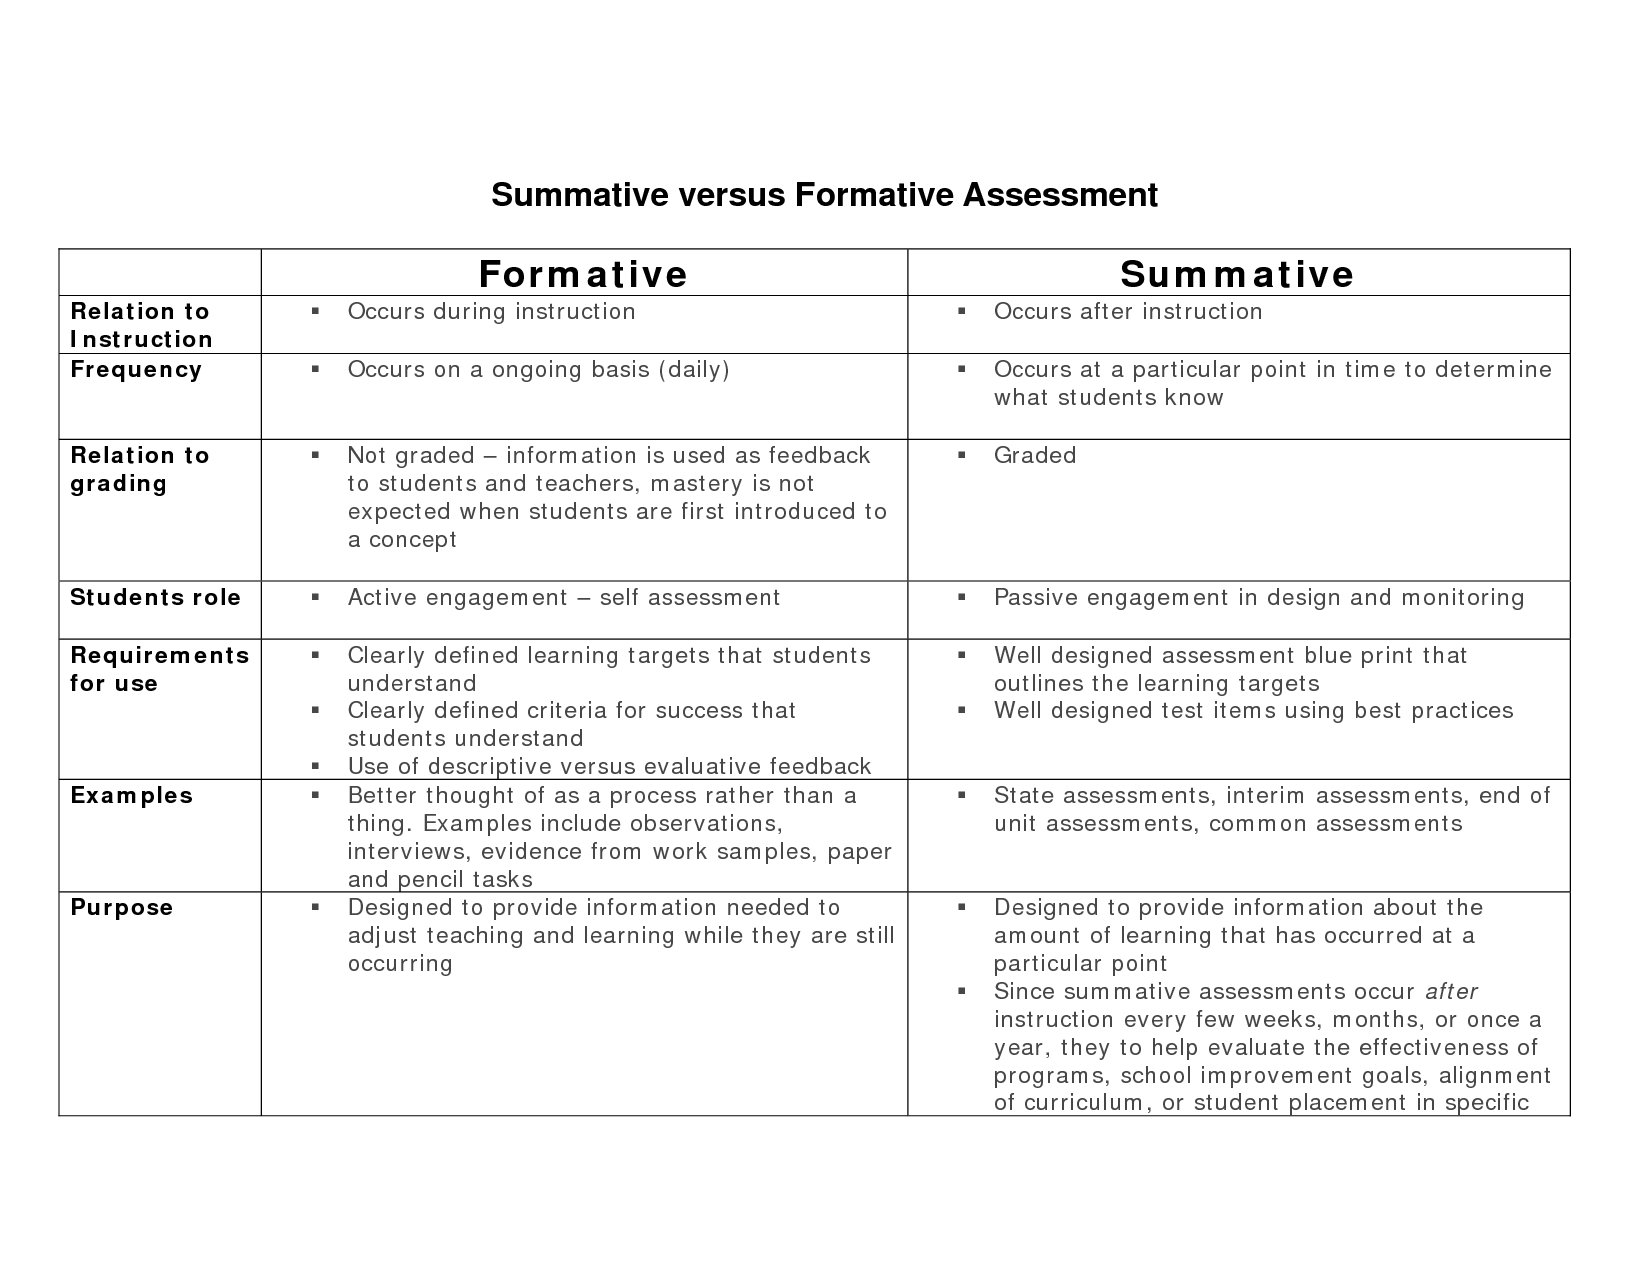 formative vs summative assessment There are a lot of differences between summative assessment vs formative assessment.